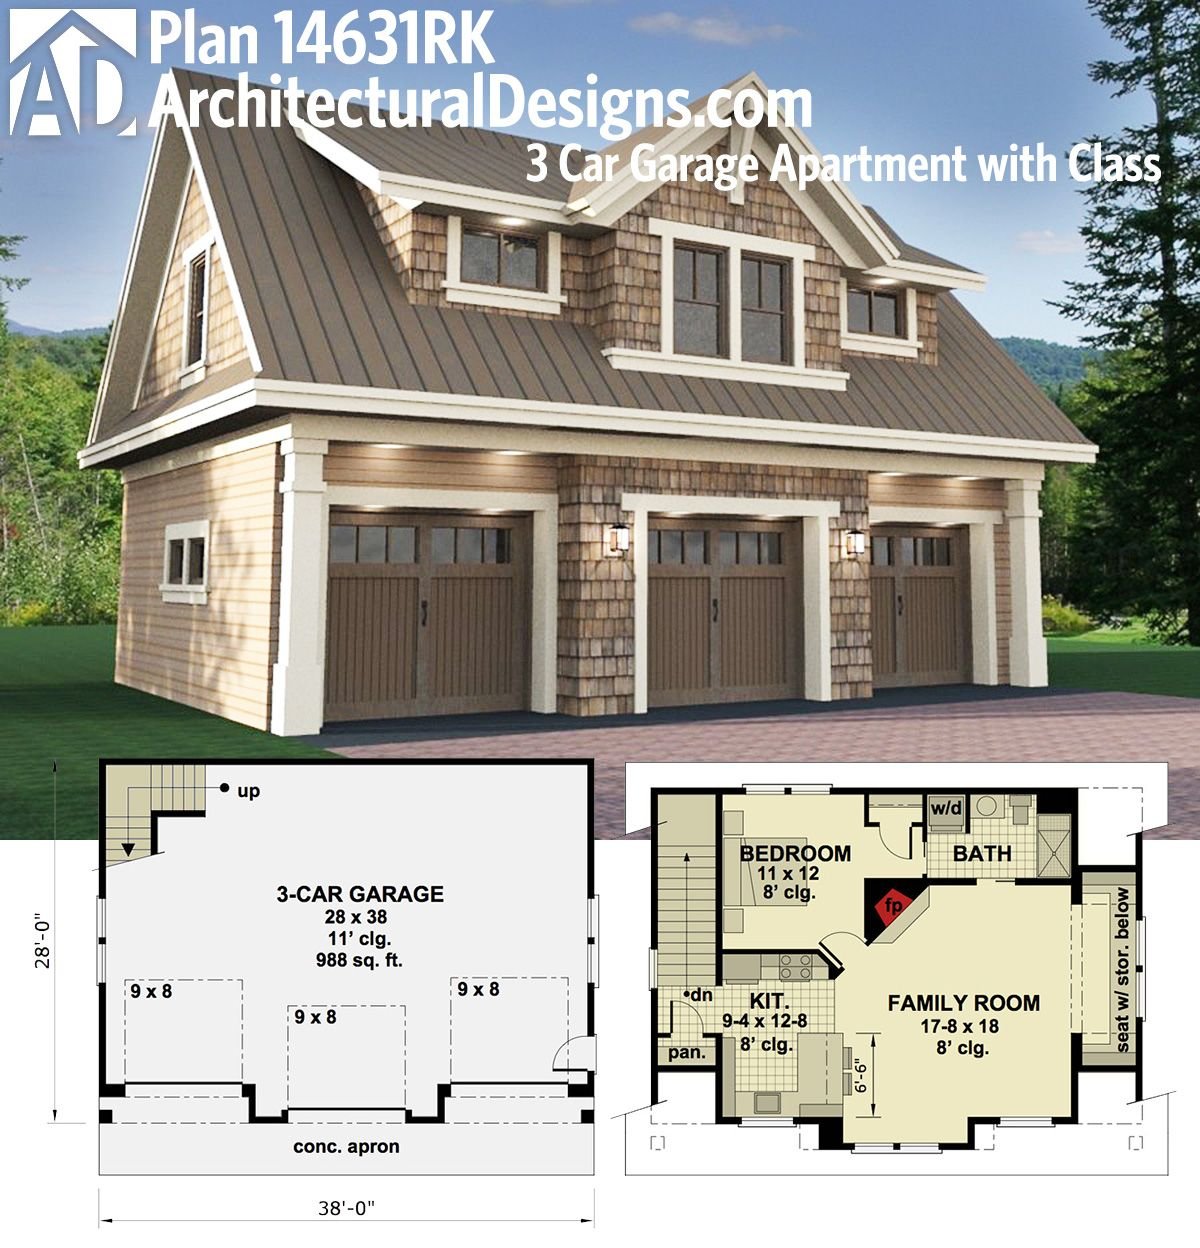 Plan 14631rk 3 car garage apartment with class carriage House plans with 4 car attached garage